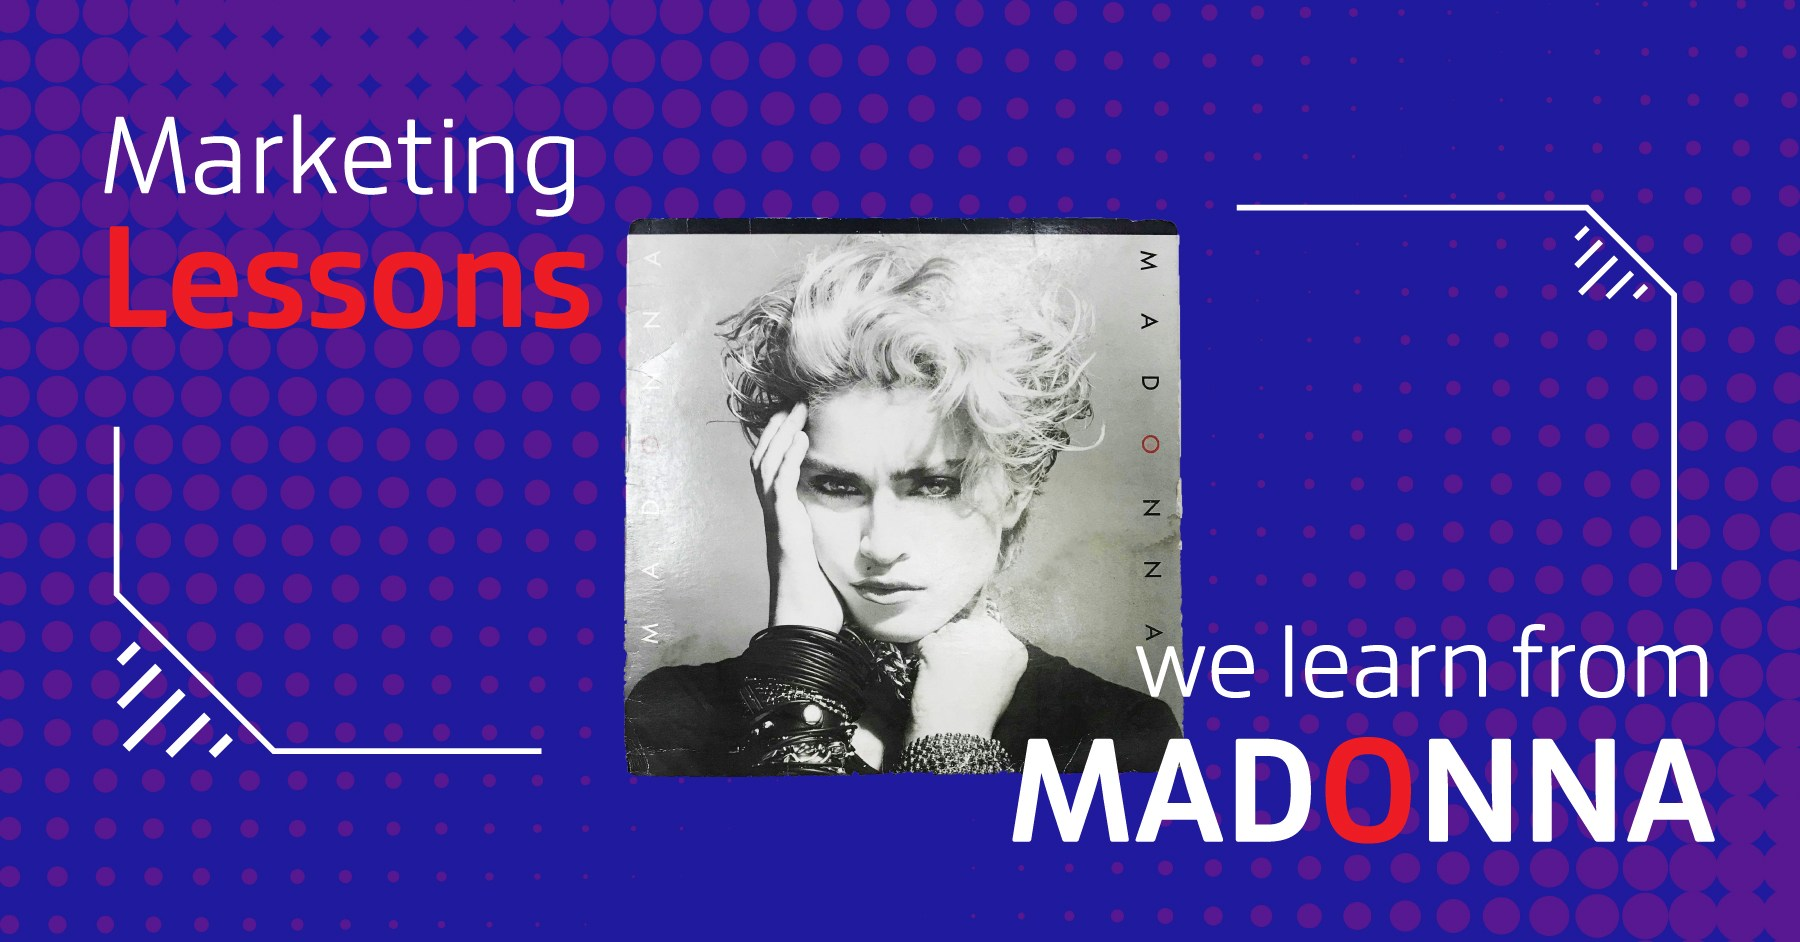 Marketing Lessons we learn from Madonna